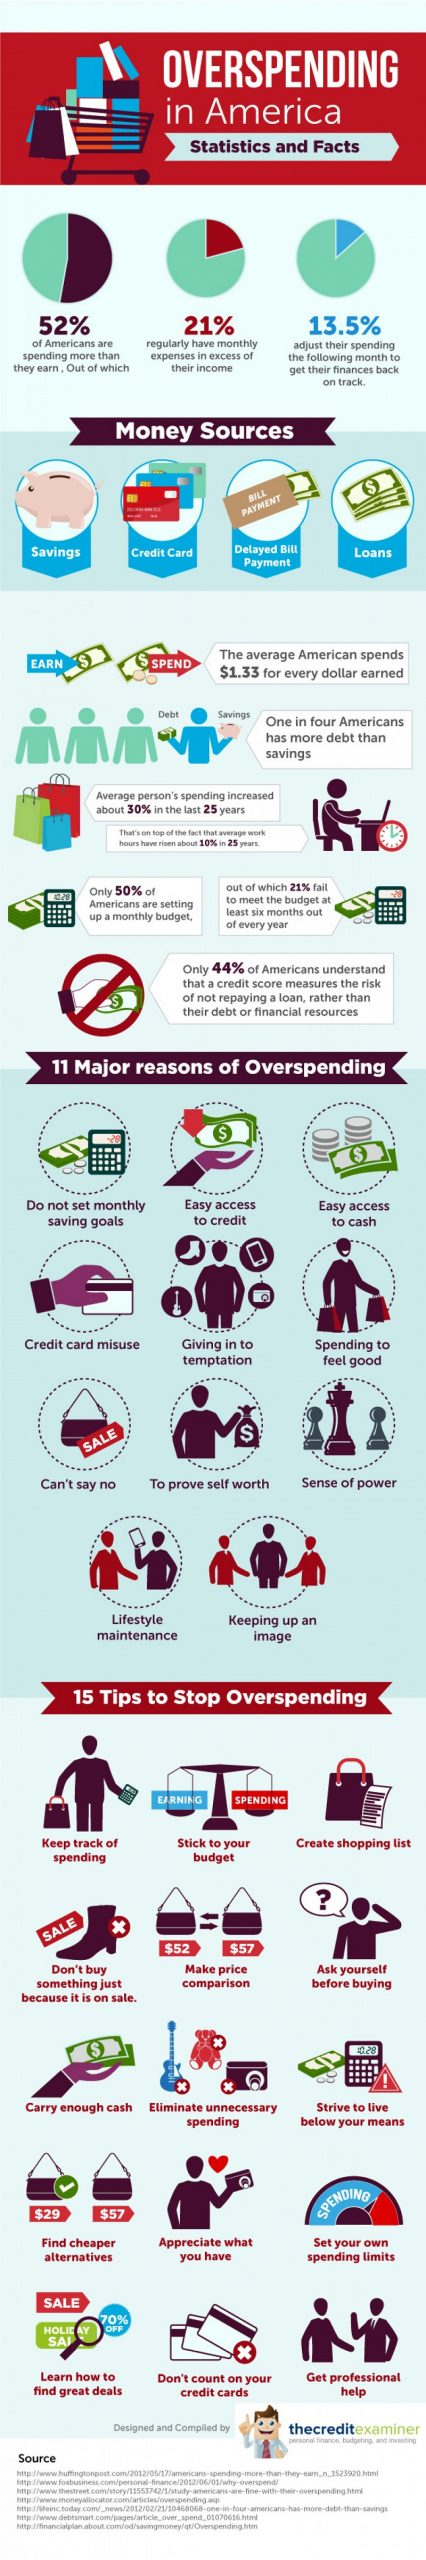 Overspending in America – Statistics and Facts [Infographic]